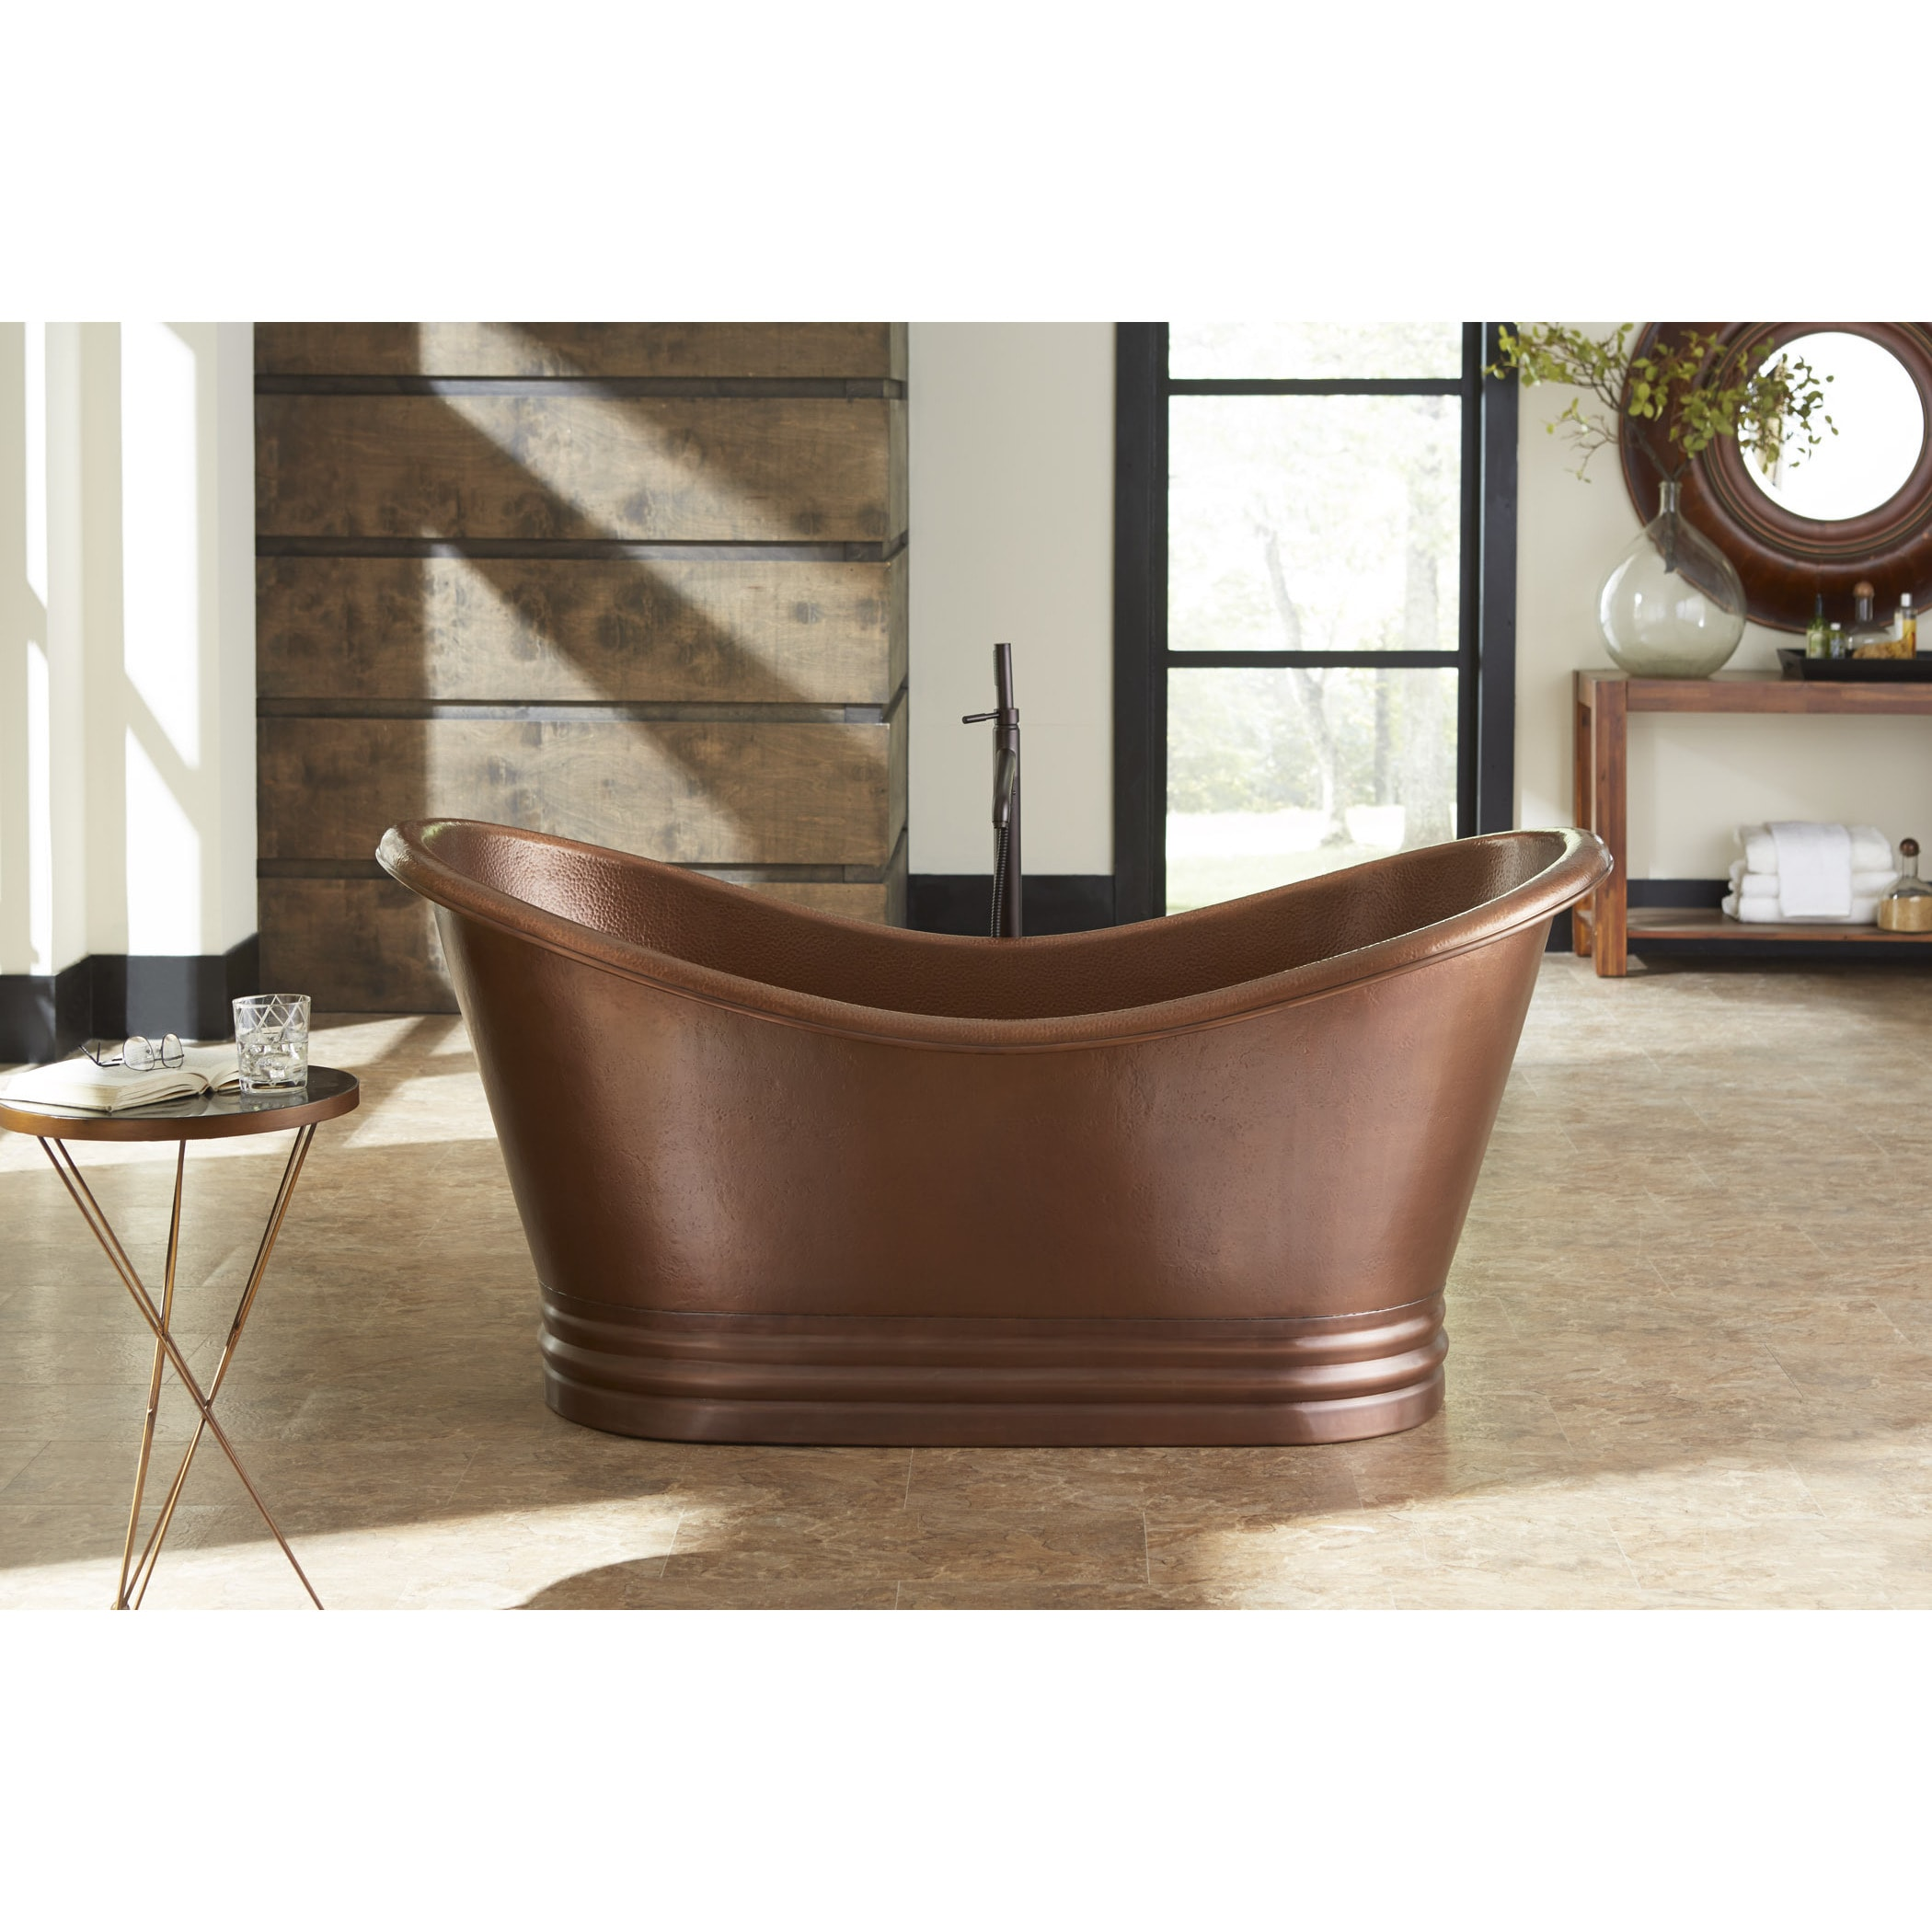 Buy Claw-Foot Tubs Online at Overstock.com | Our Best Bathtubs Deals